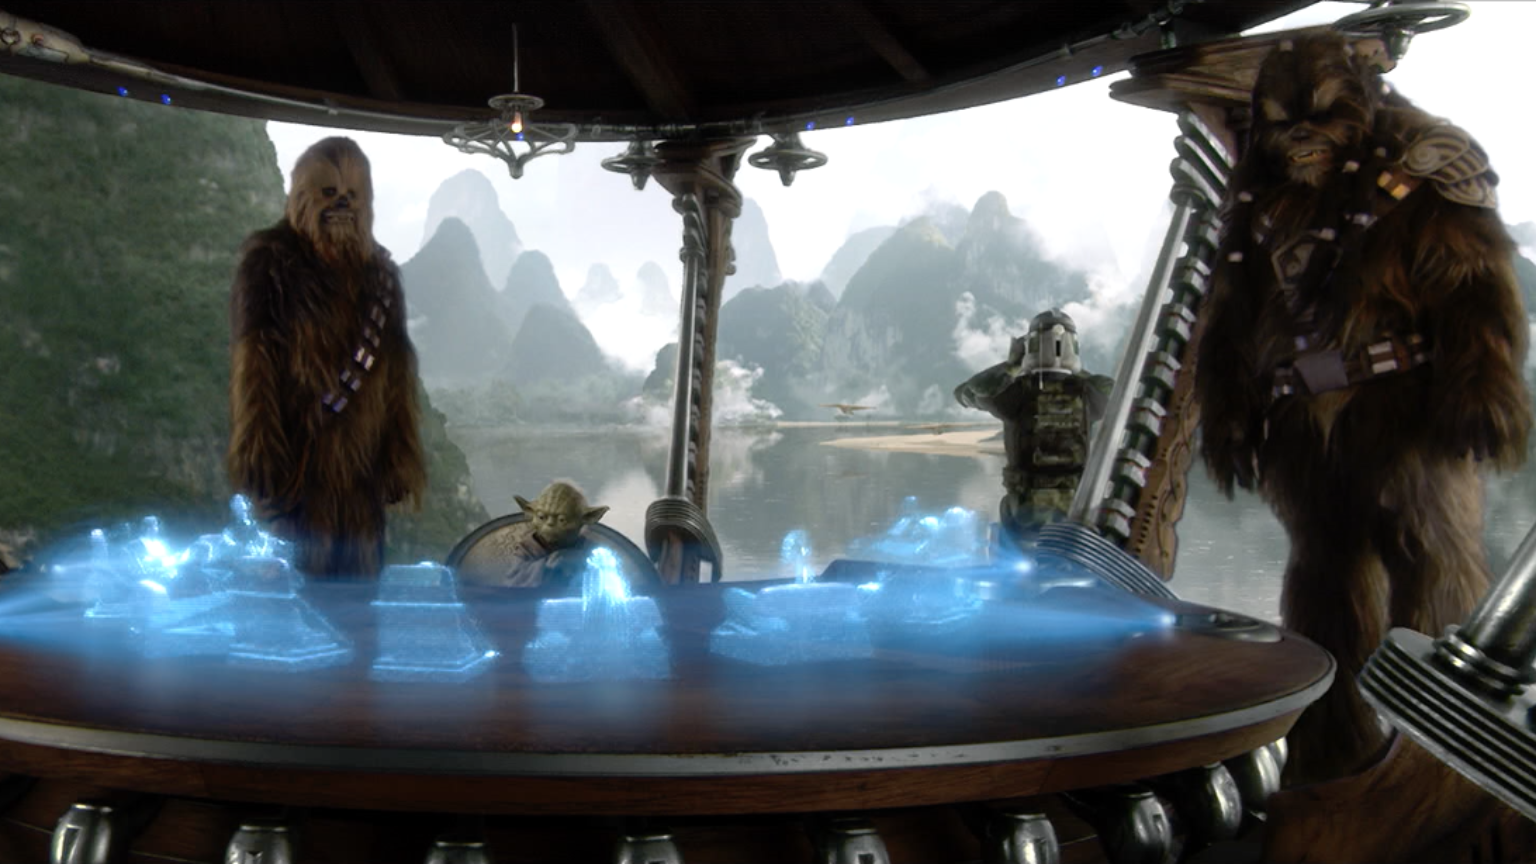 Chewbacca, Yoda, and Tarfful addressing a holoprojection of the Jedi Council